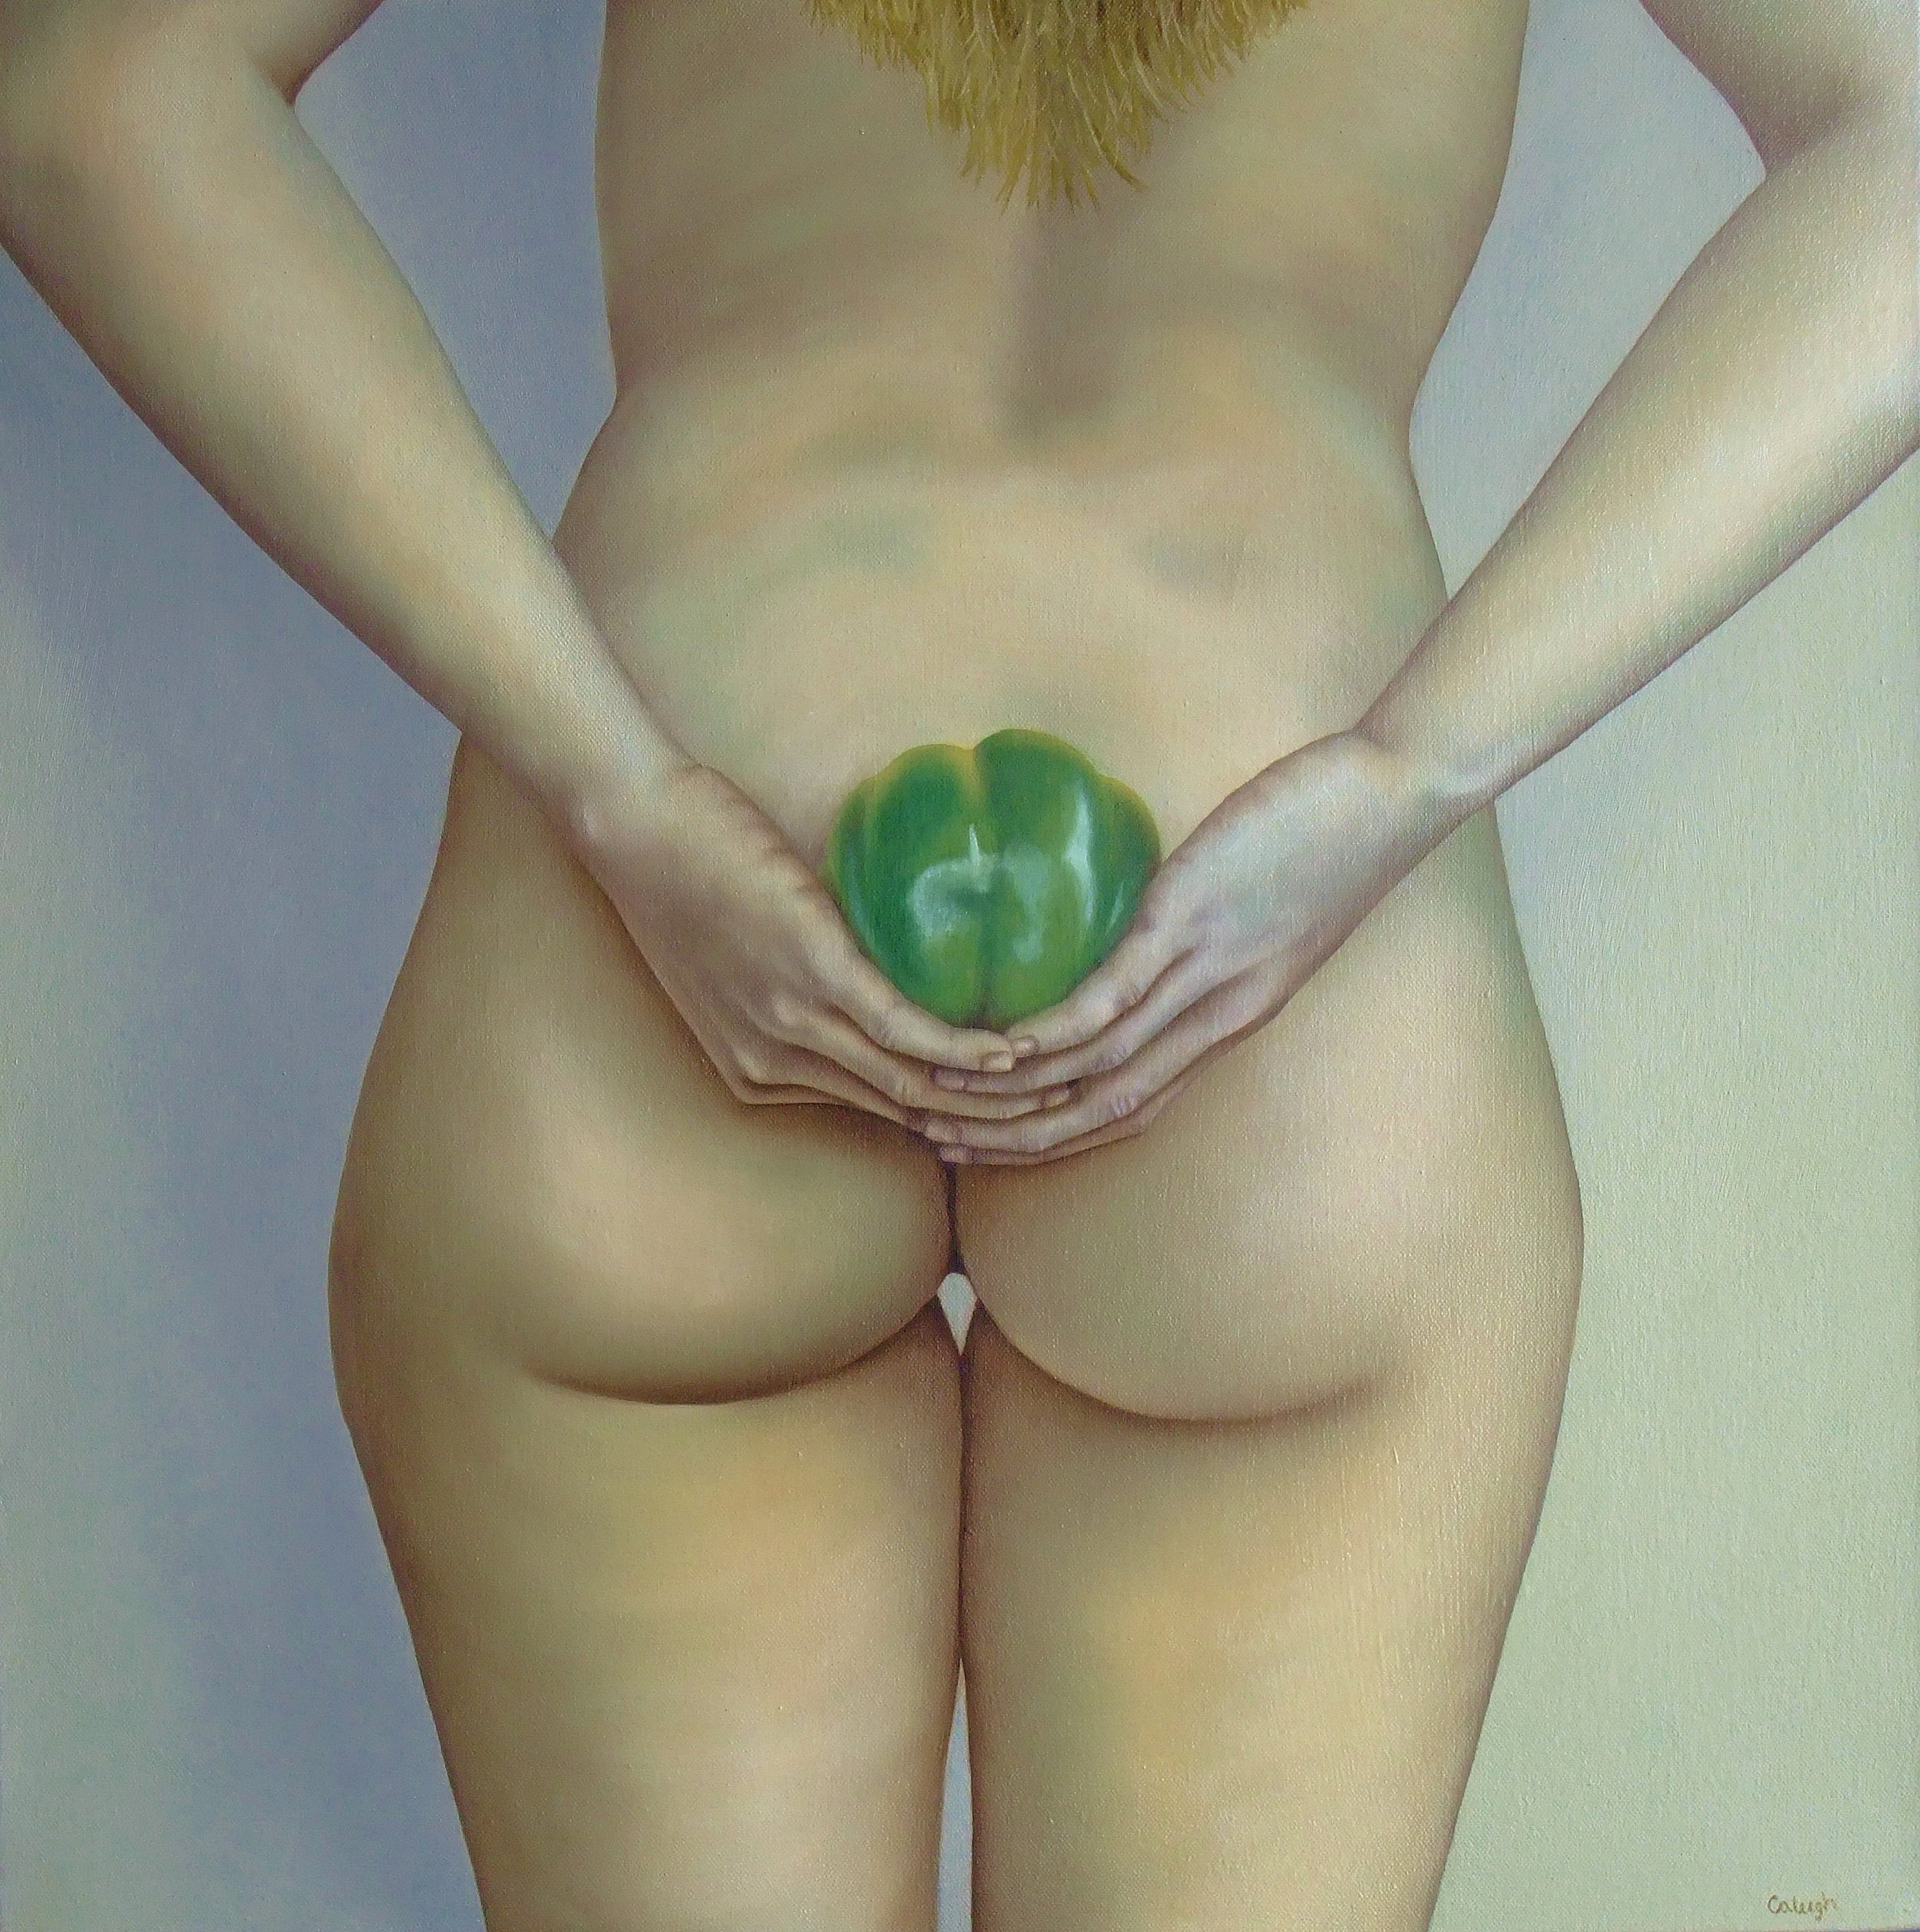 Green Pepper   oil on canvas  24 x 24 inches  2015